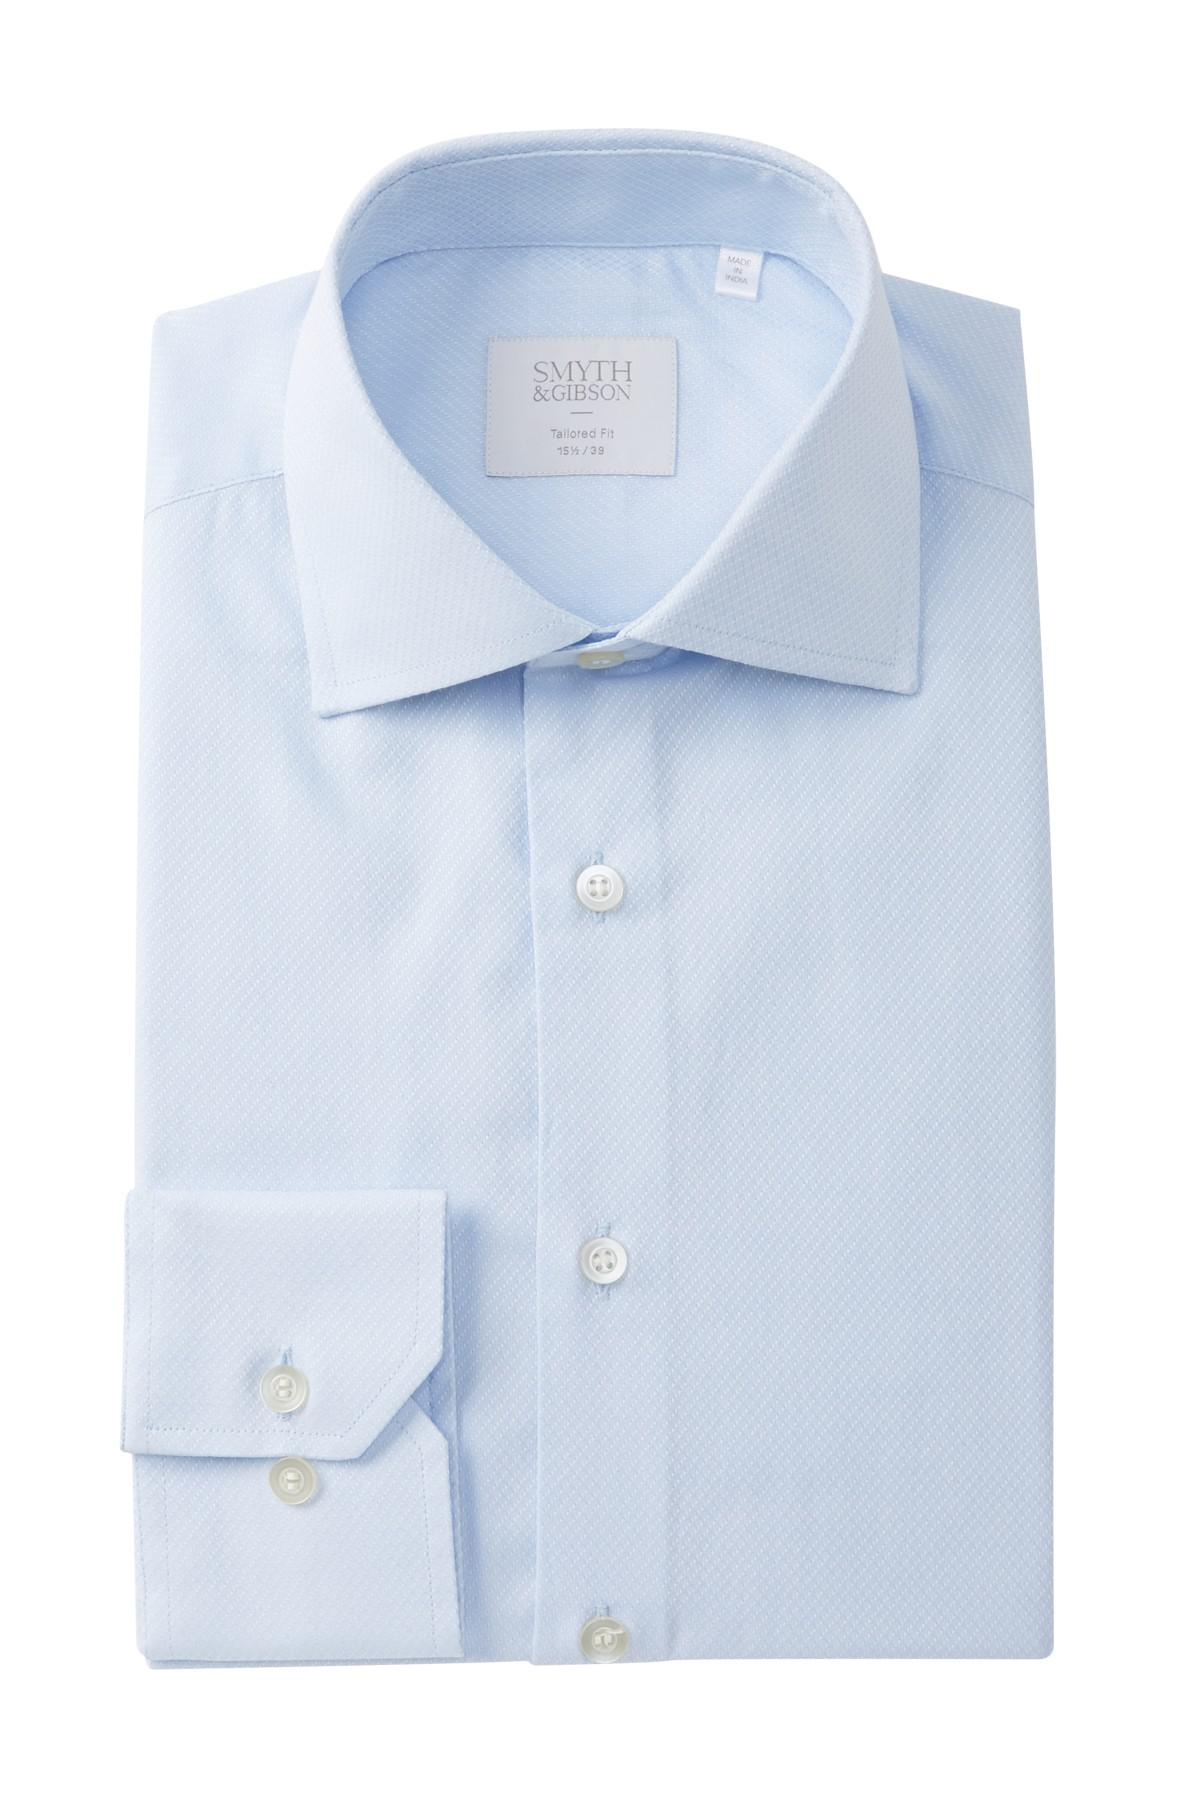 Lyst smyth gibson diagonal v dobby tailored fit dress for Nordstrom custom dress shirts